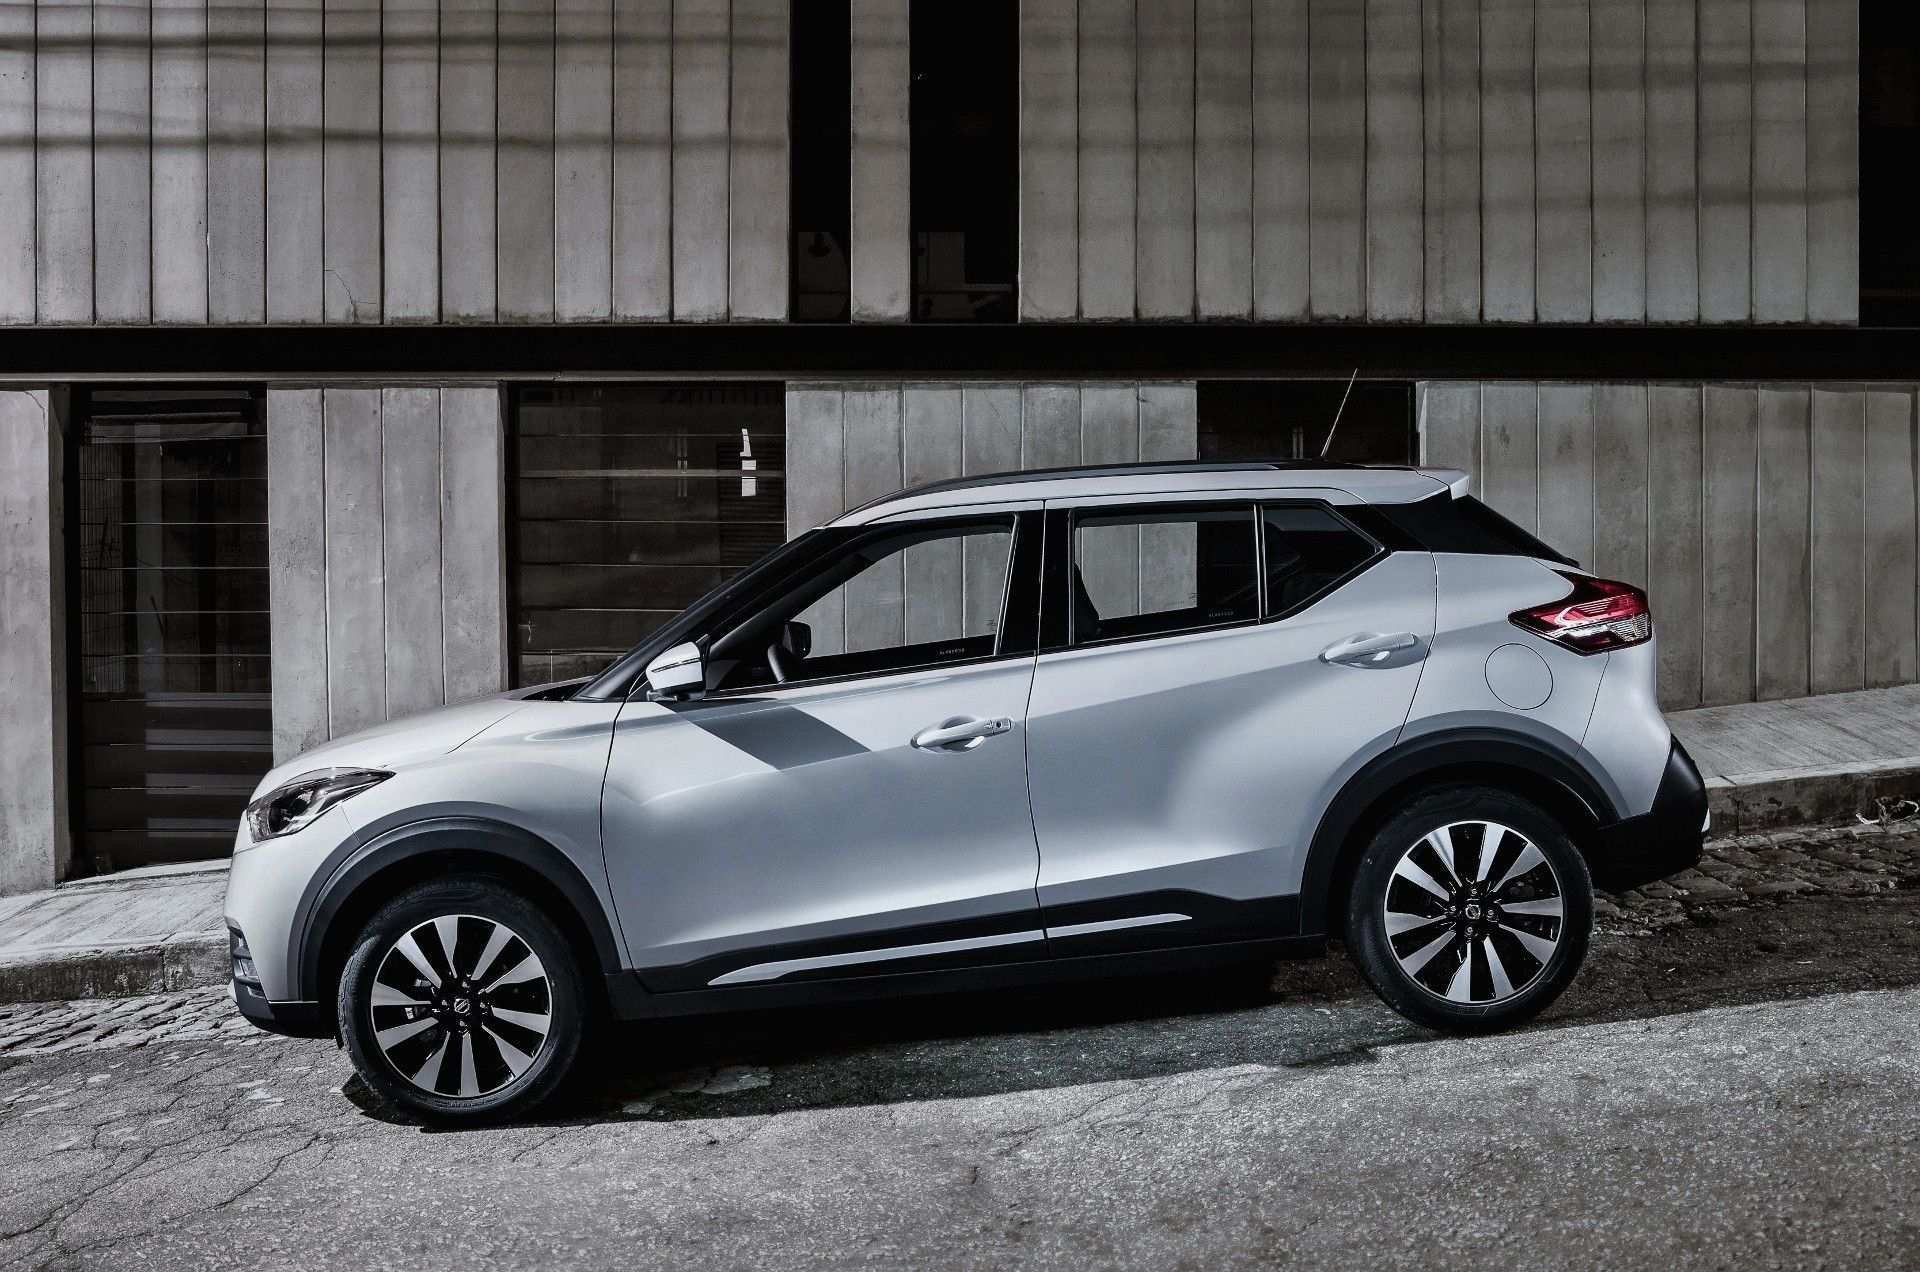 93 The Nissan Kicks 2019 Preco Specs And Review New Concept for Nissan Kicks 2019 Preco Specs And Review